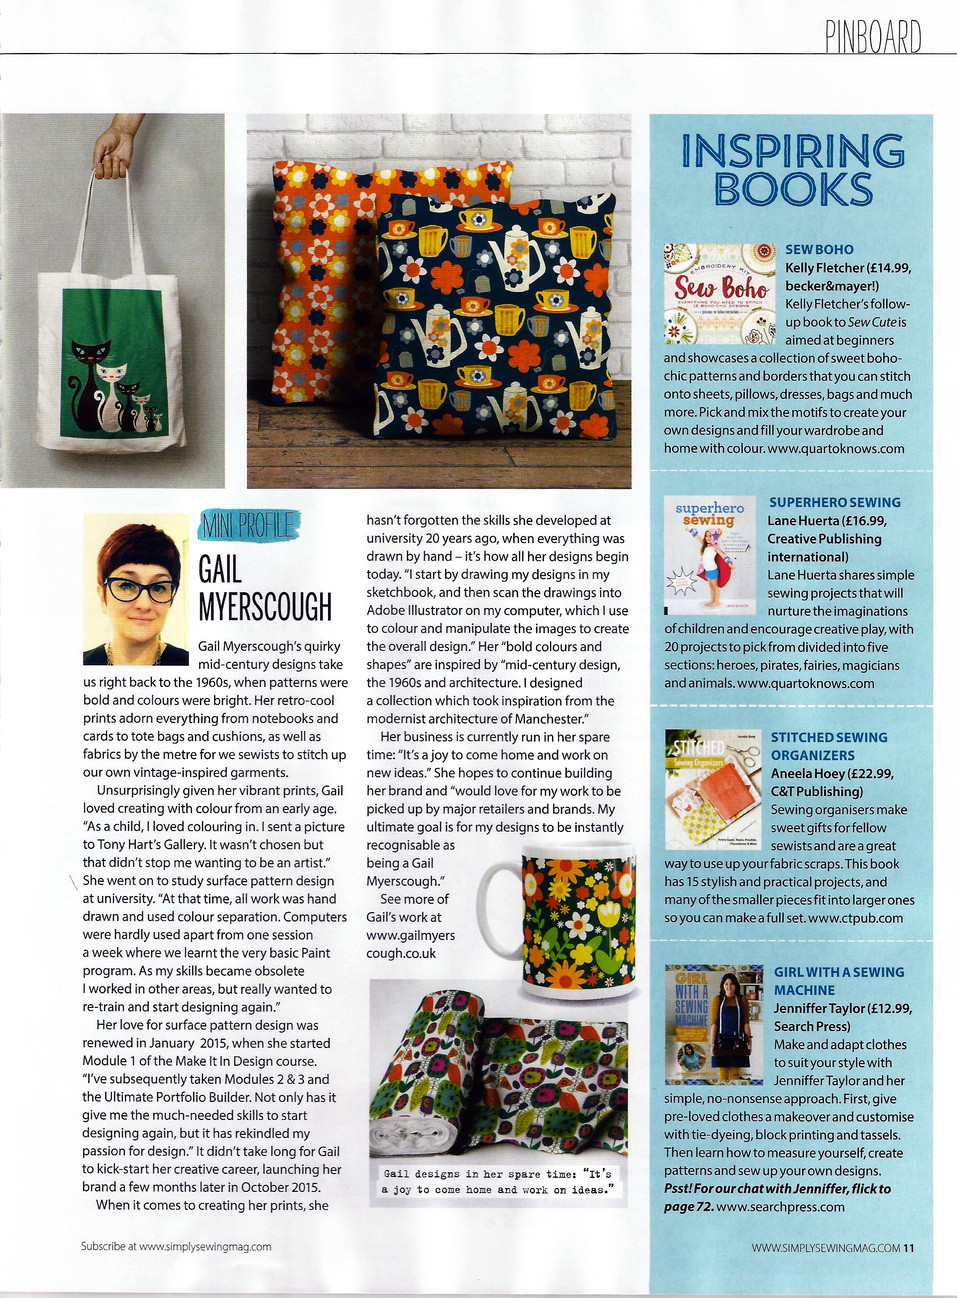 Simply Sewing magazine Gail Myerscough